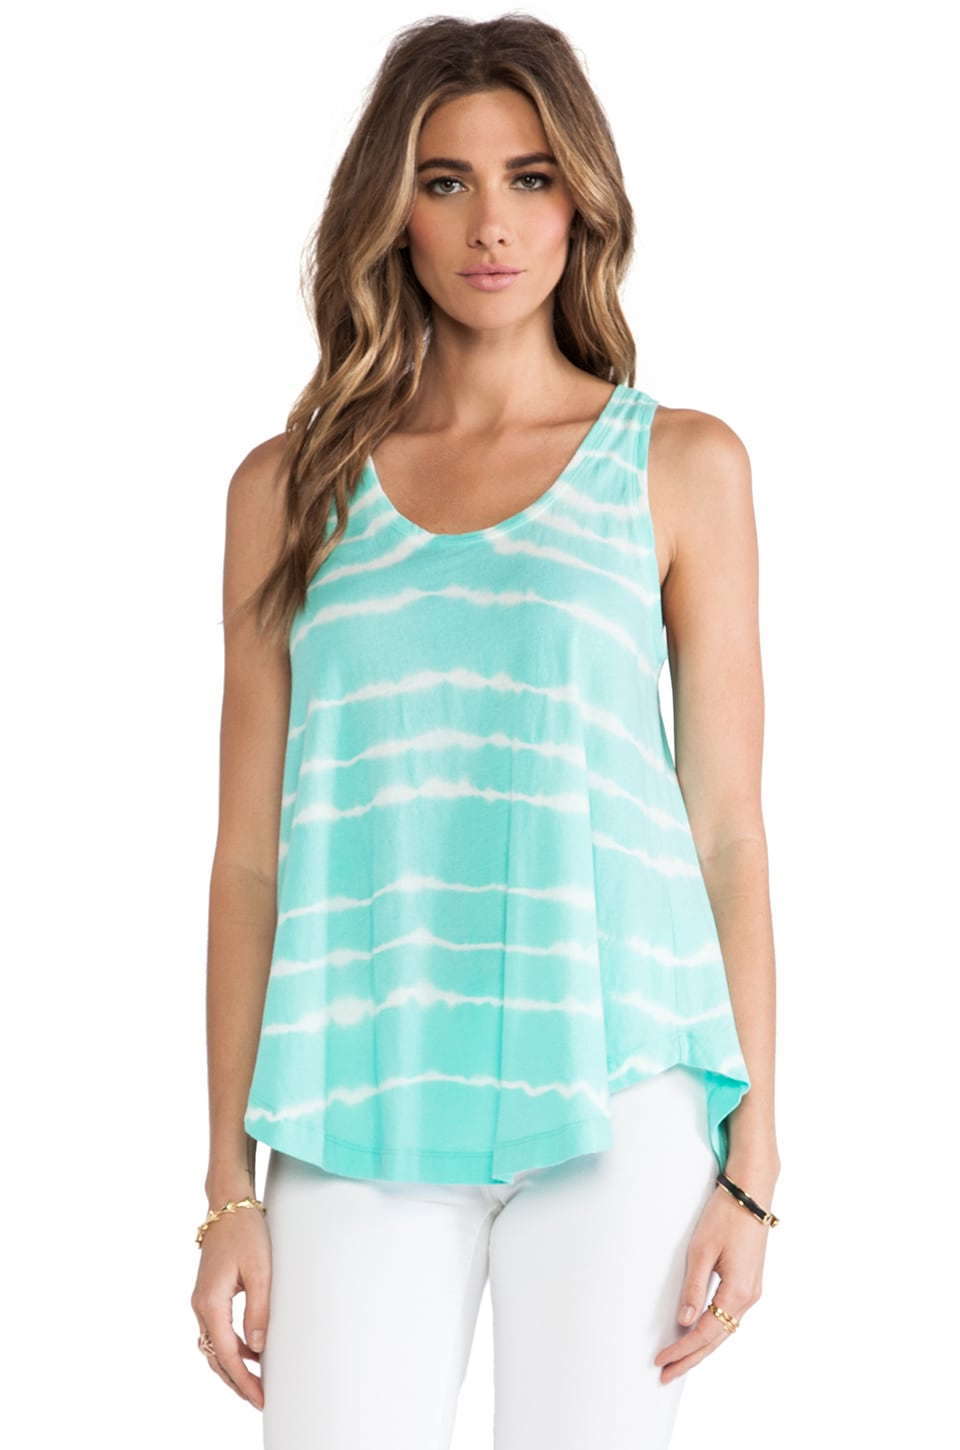 Bobi Light Weight Tie Dye Jersey Swing Tank in Aqua